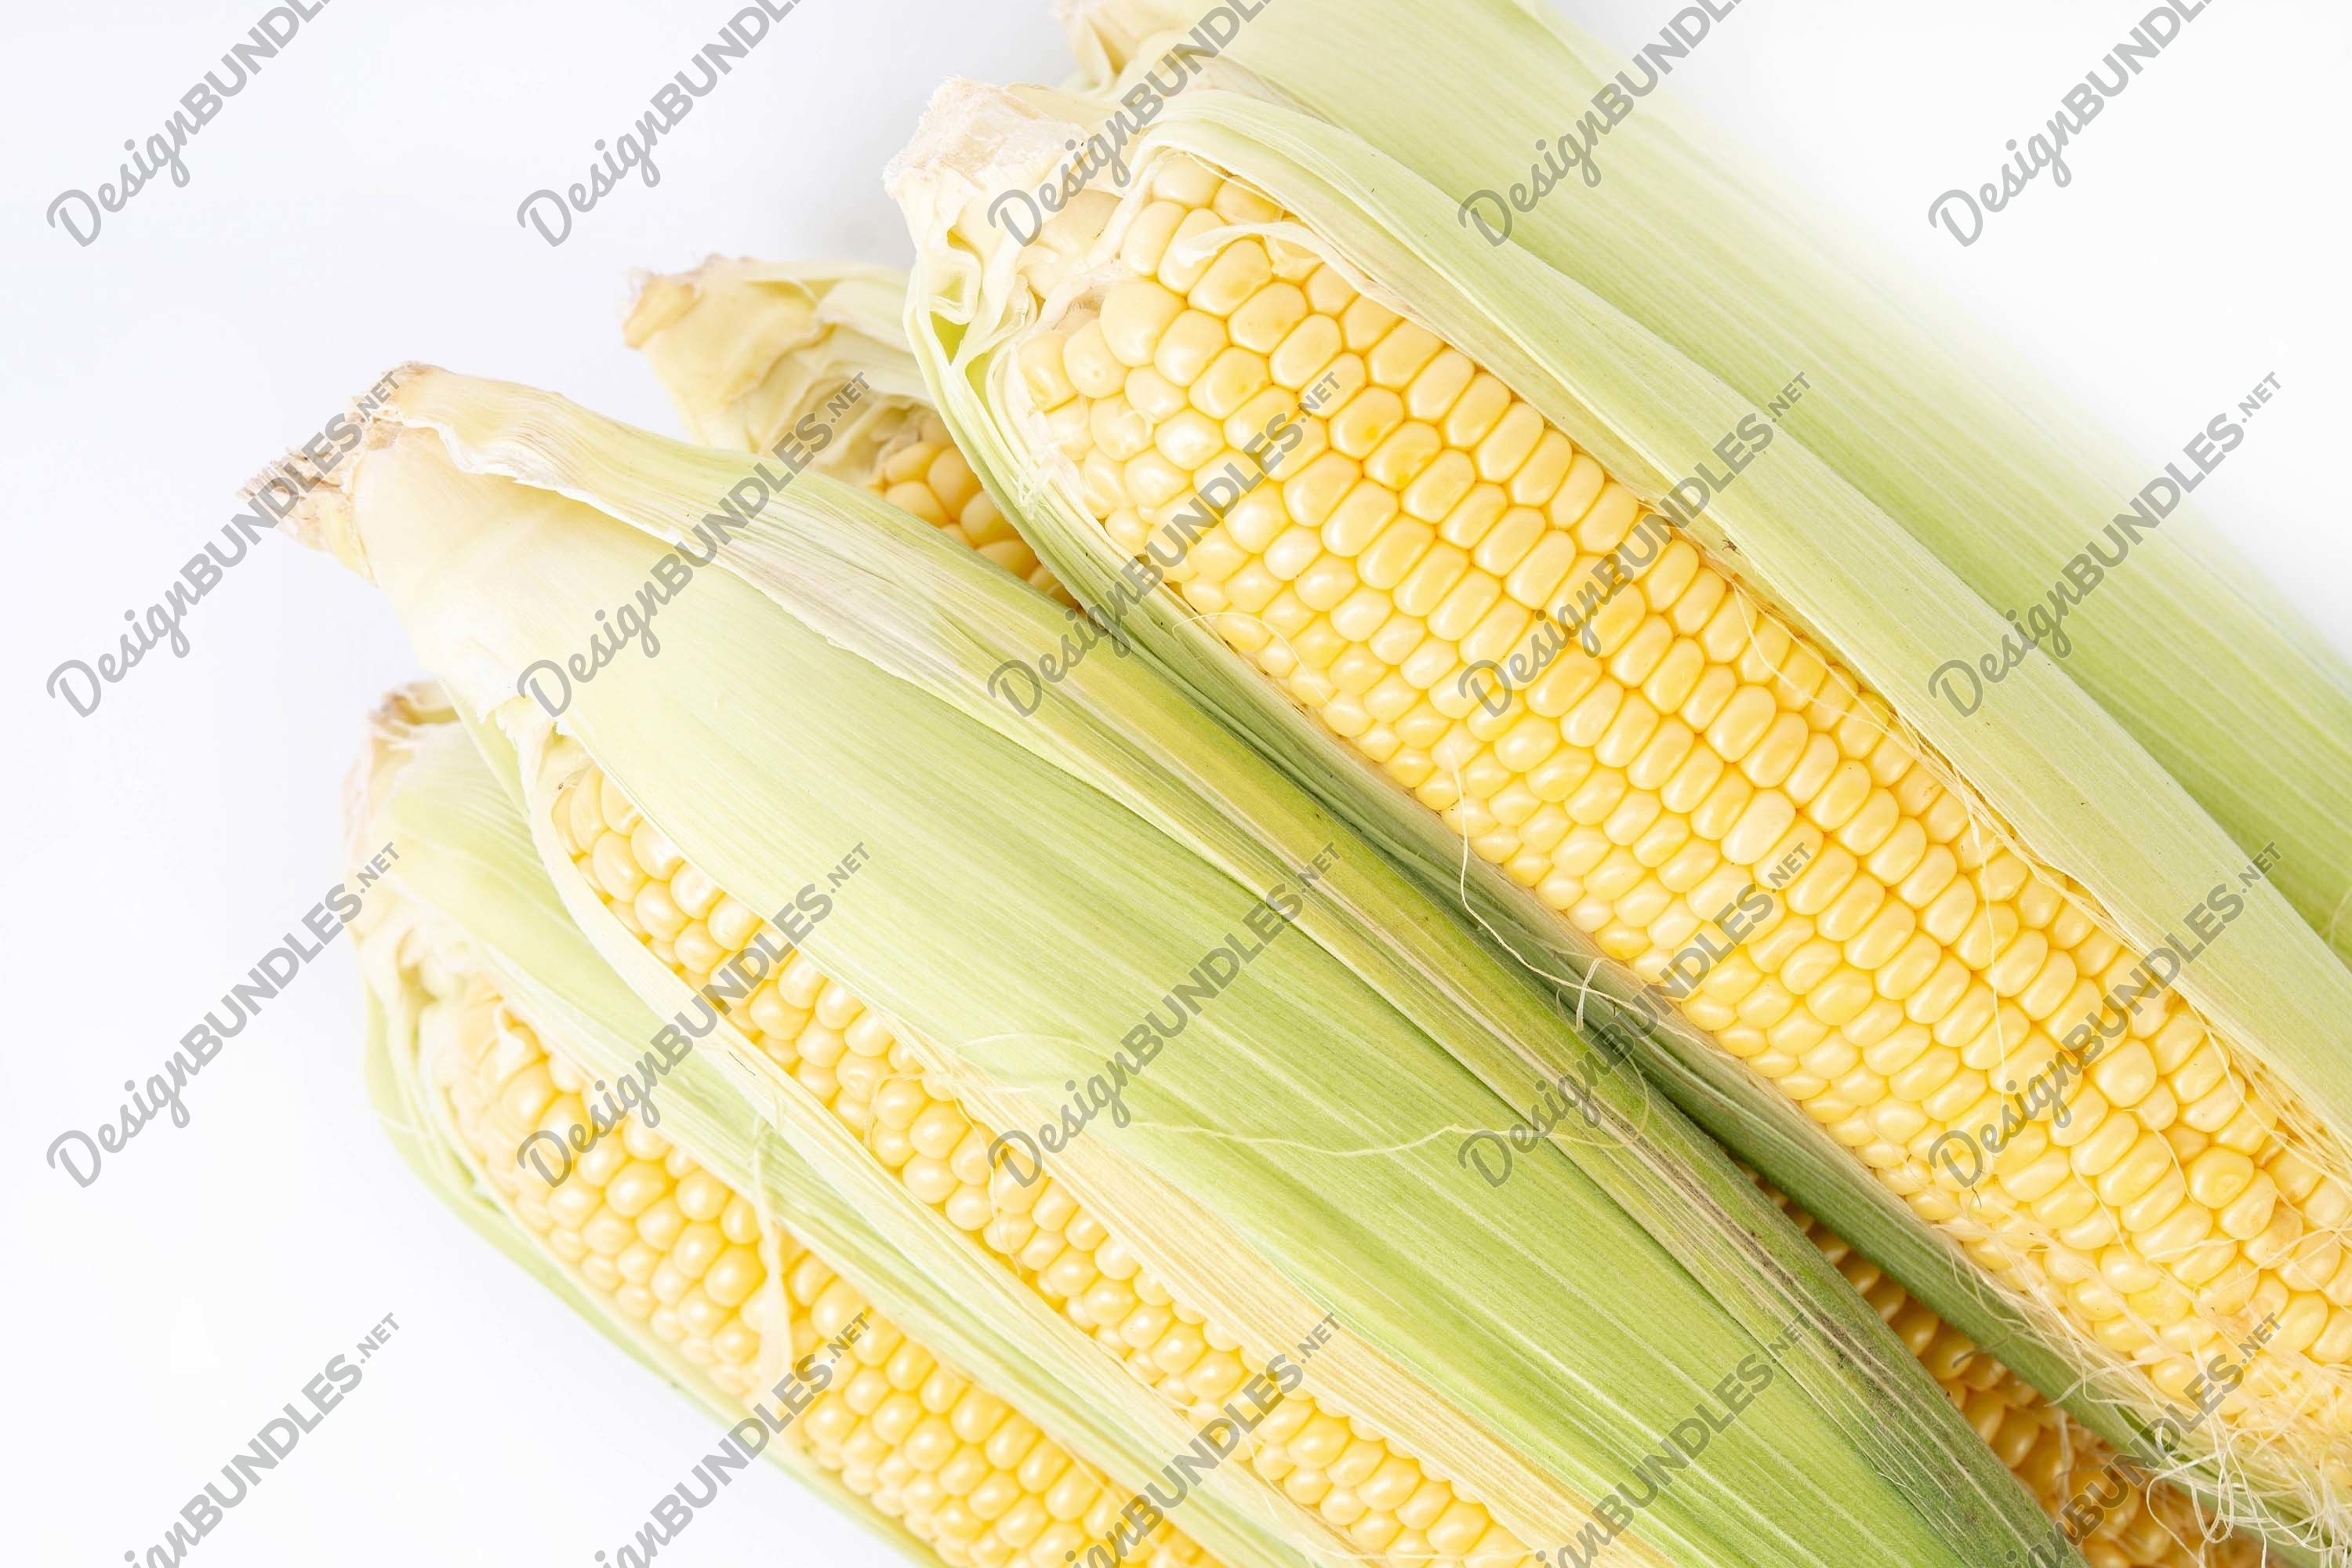 Stock Photo - High Angle View Of Corn example image 1